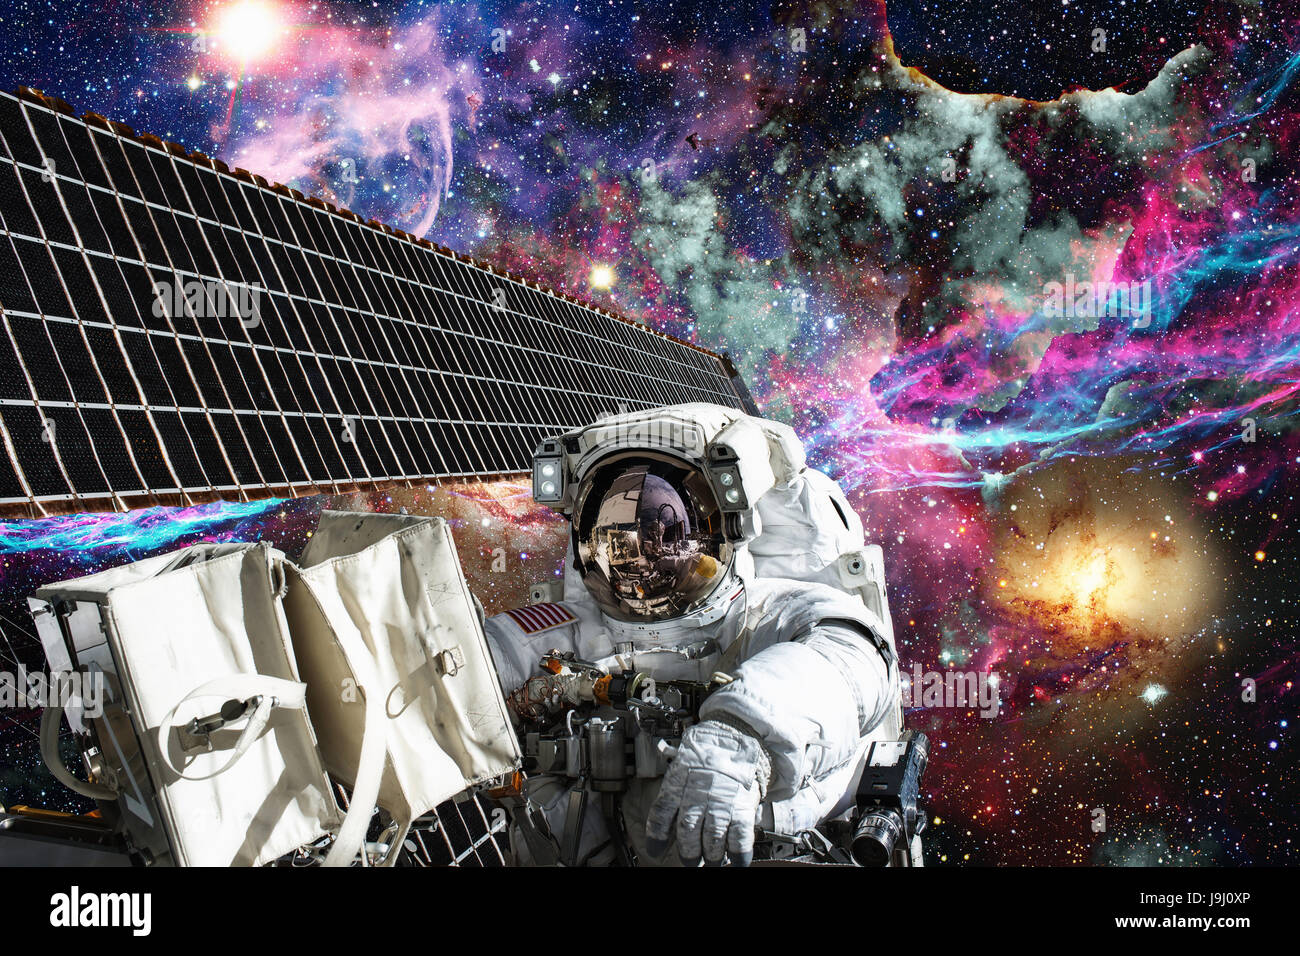 International Space Station and astronaut in outer space over the planet Earth. - Stock Image